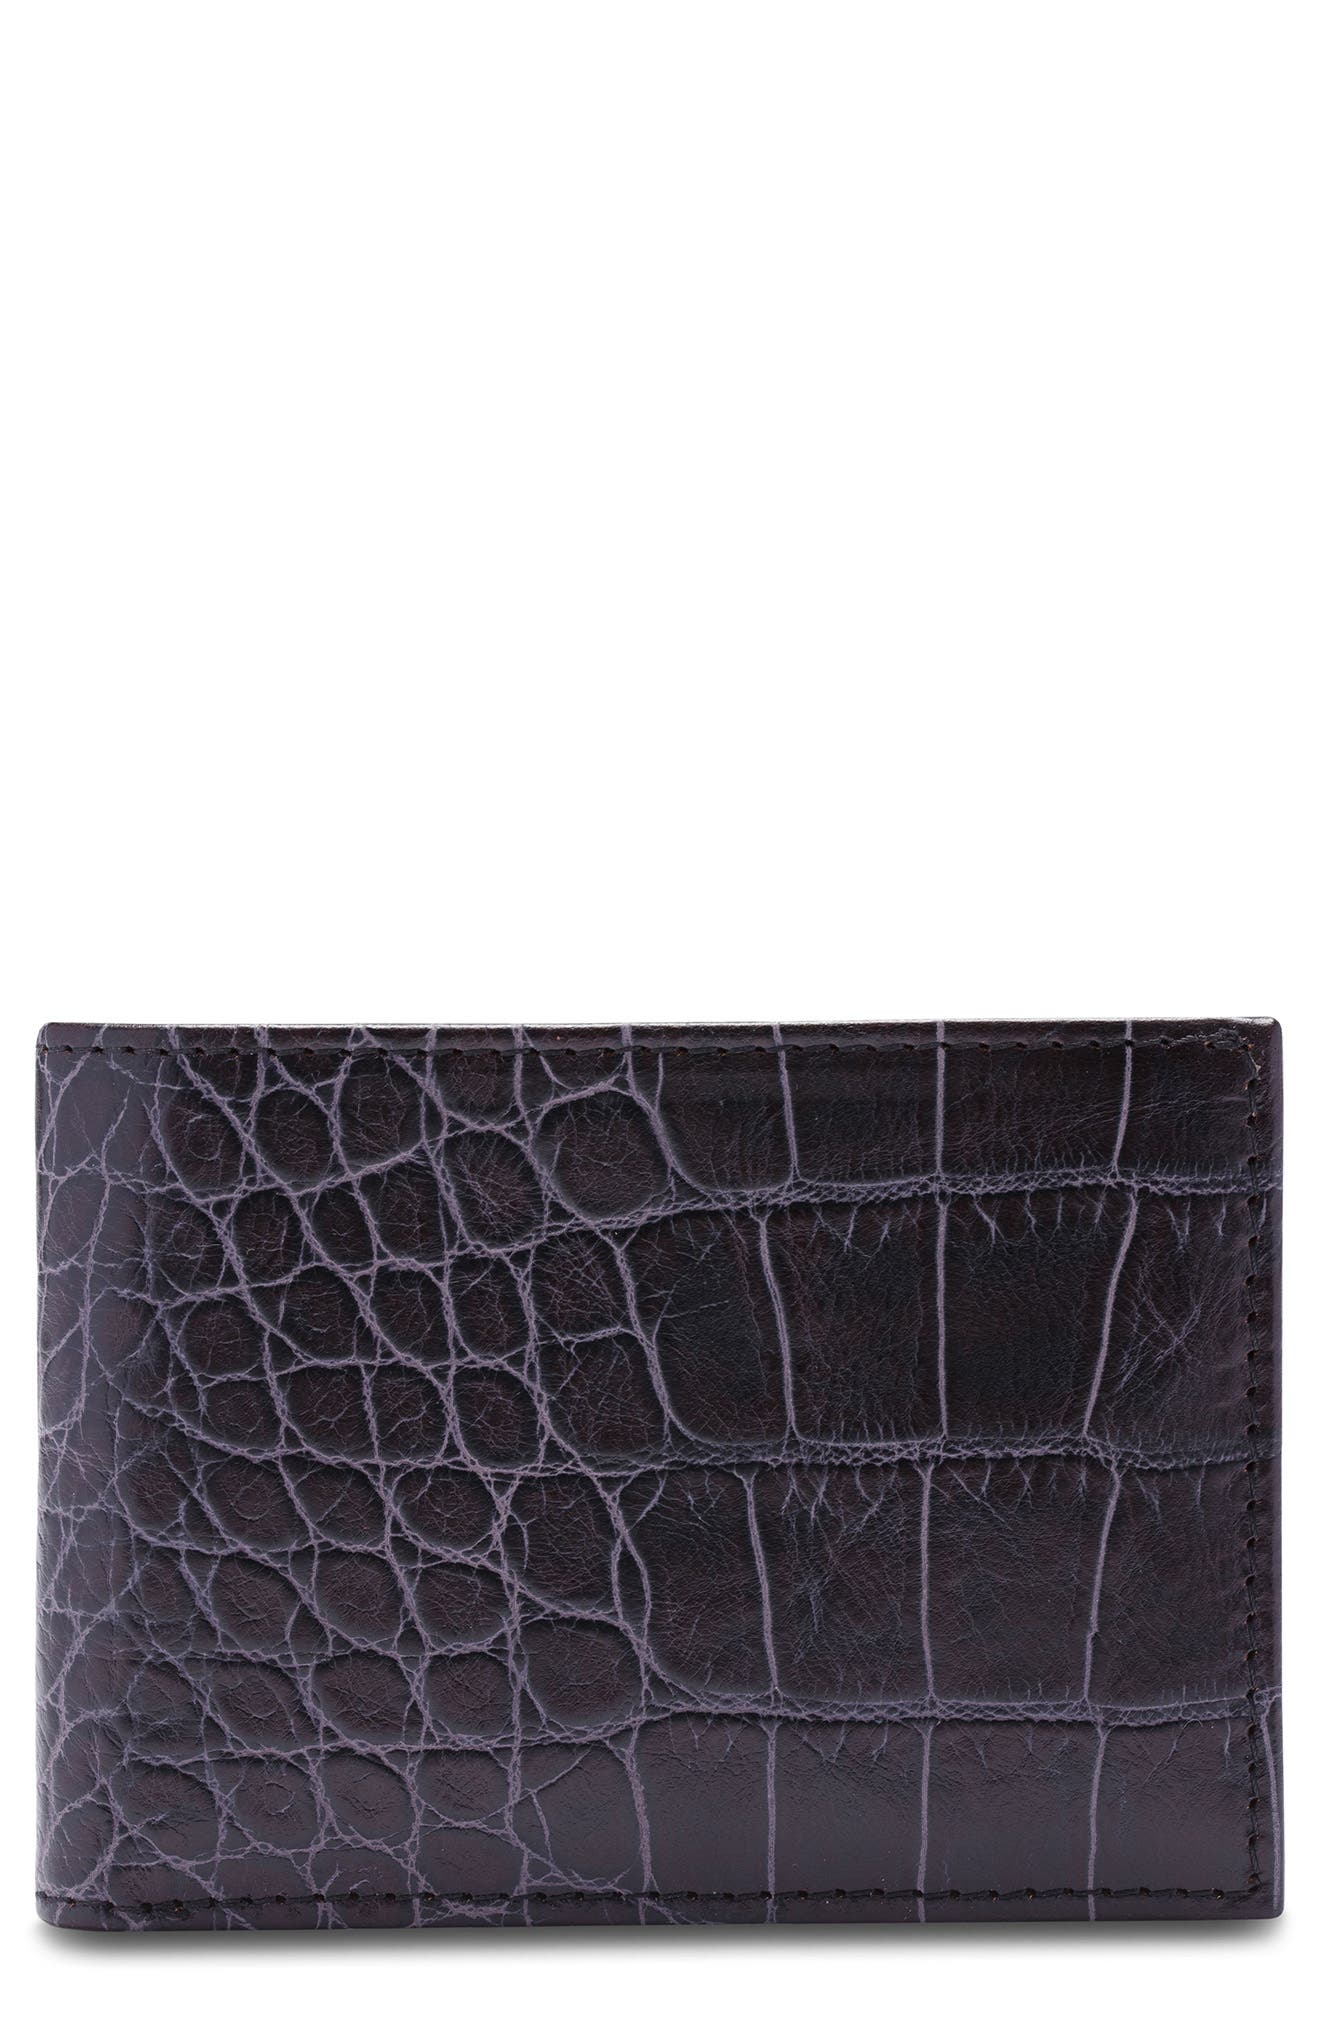 Croc Embossed Leather Small Bifold Wallet